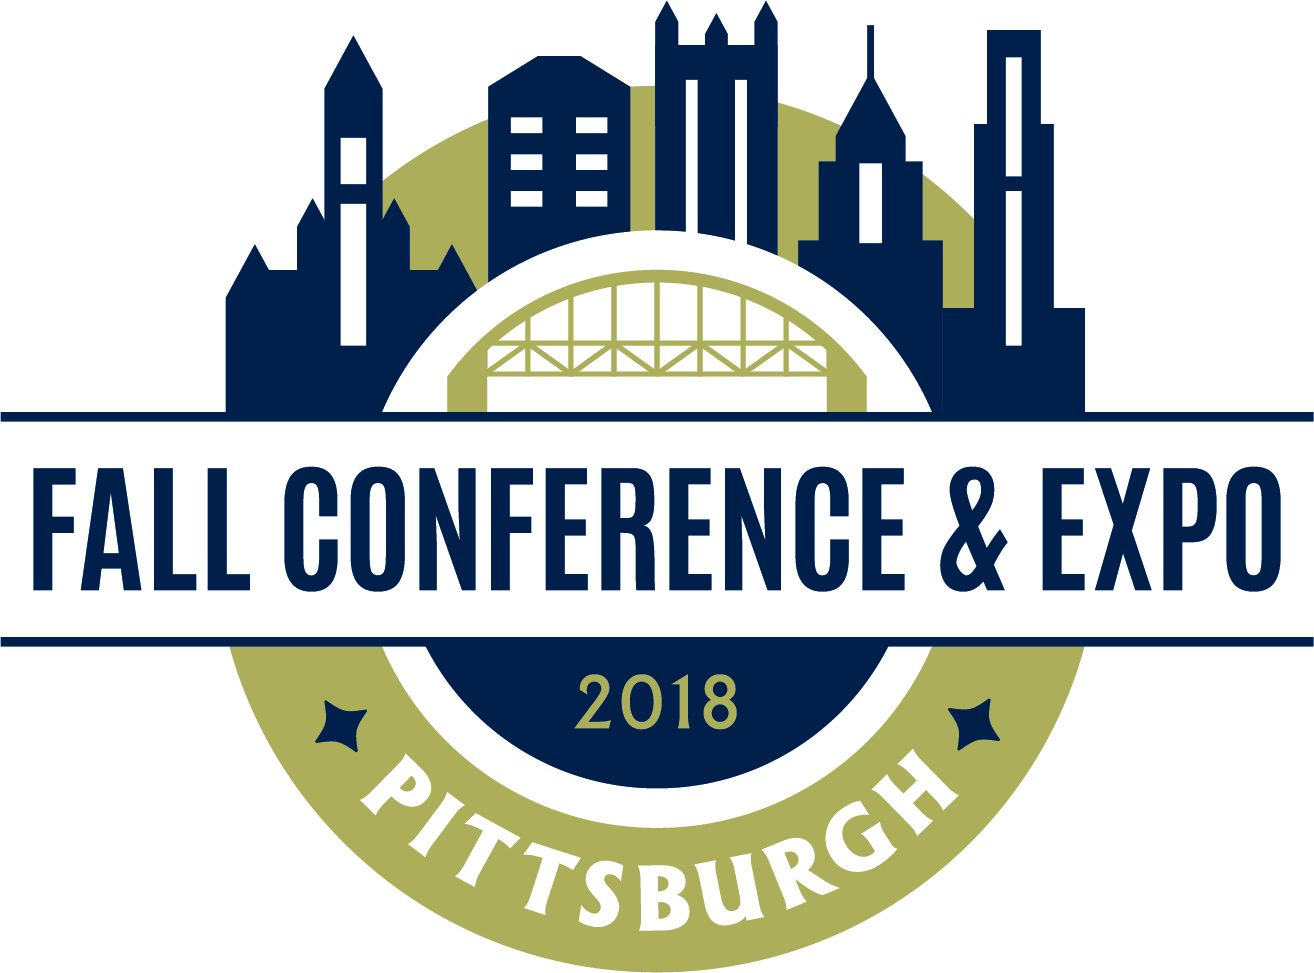 2018 Fall Conference & Expo